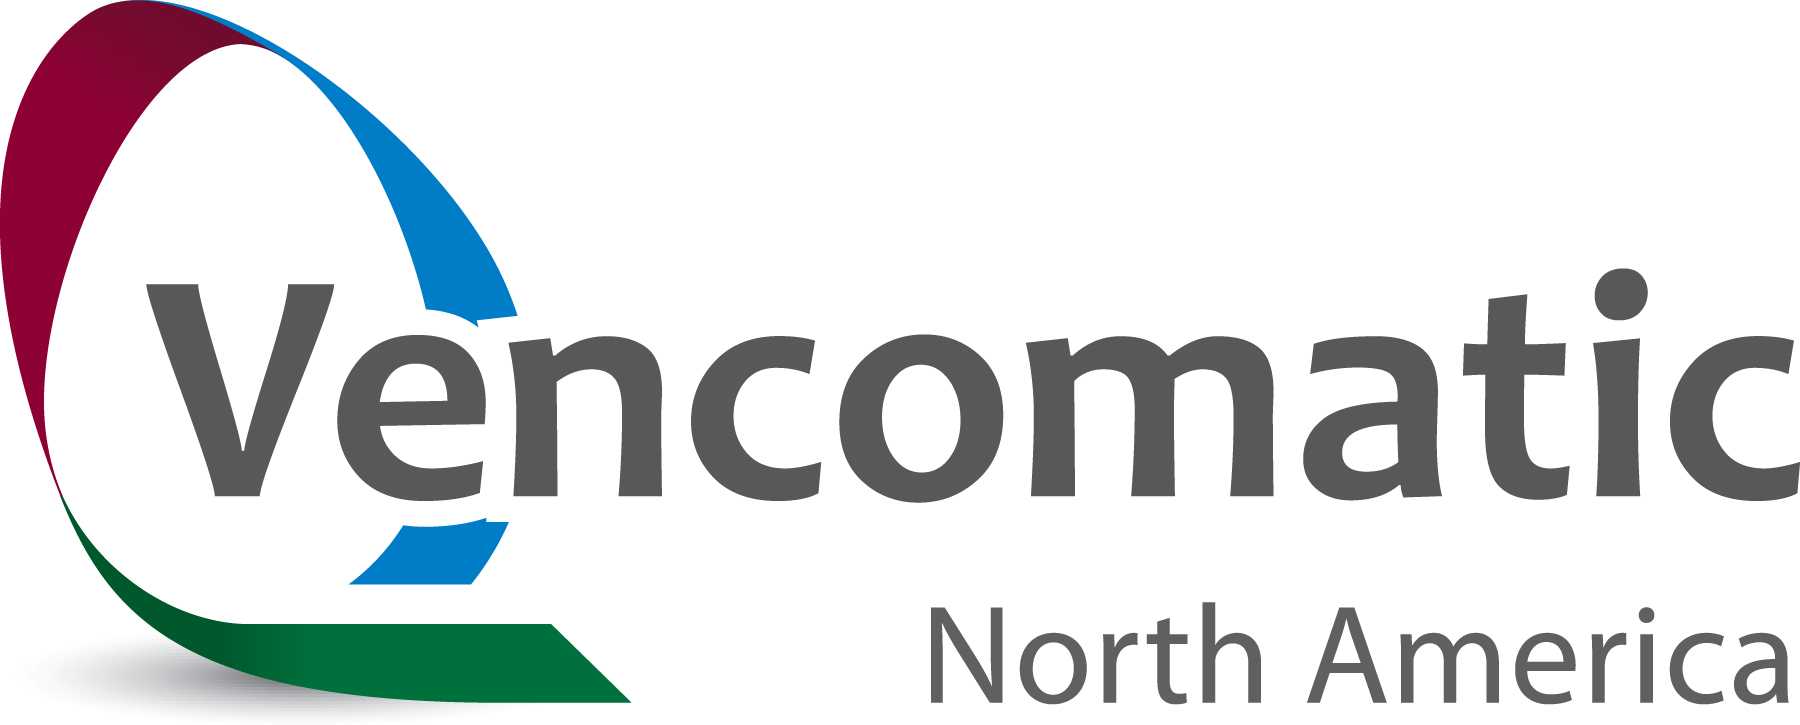 vencomatic north america logo